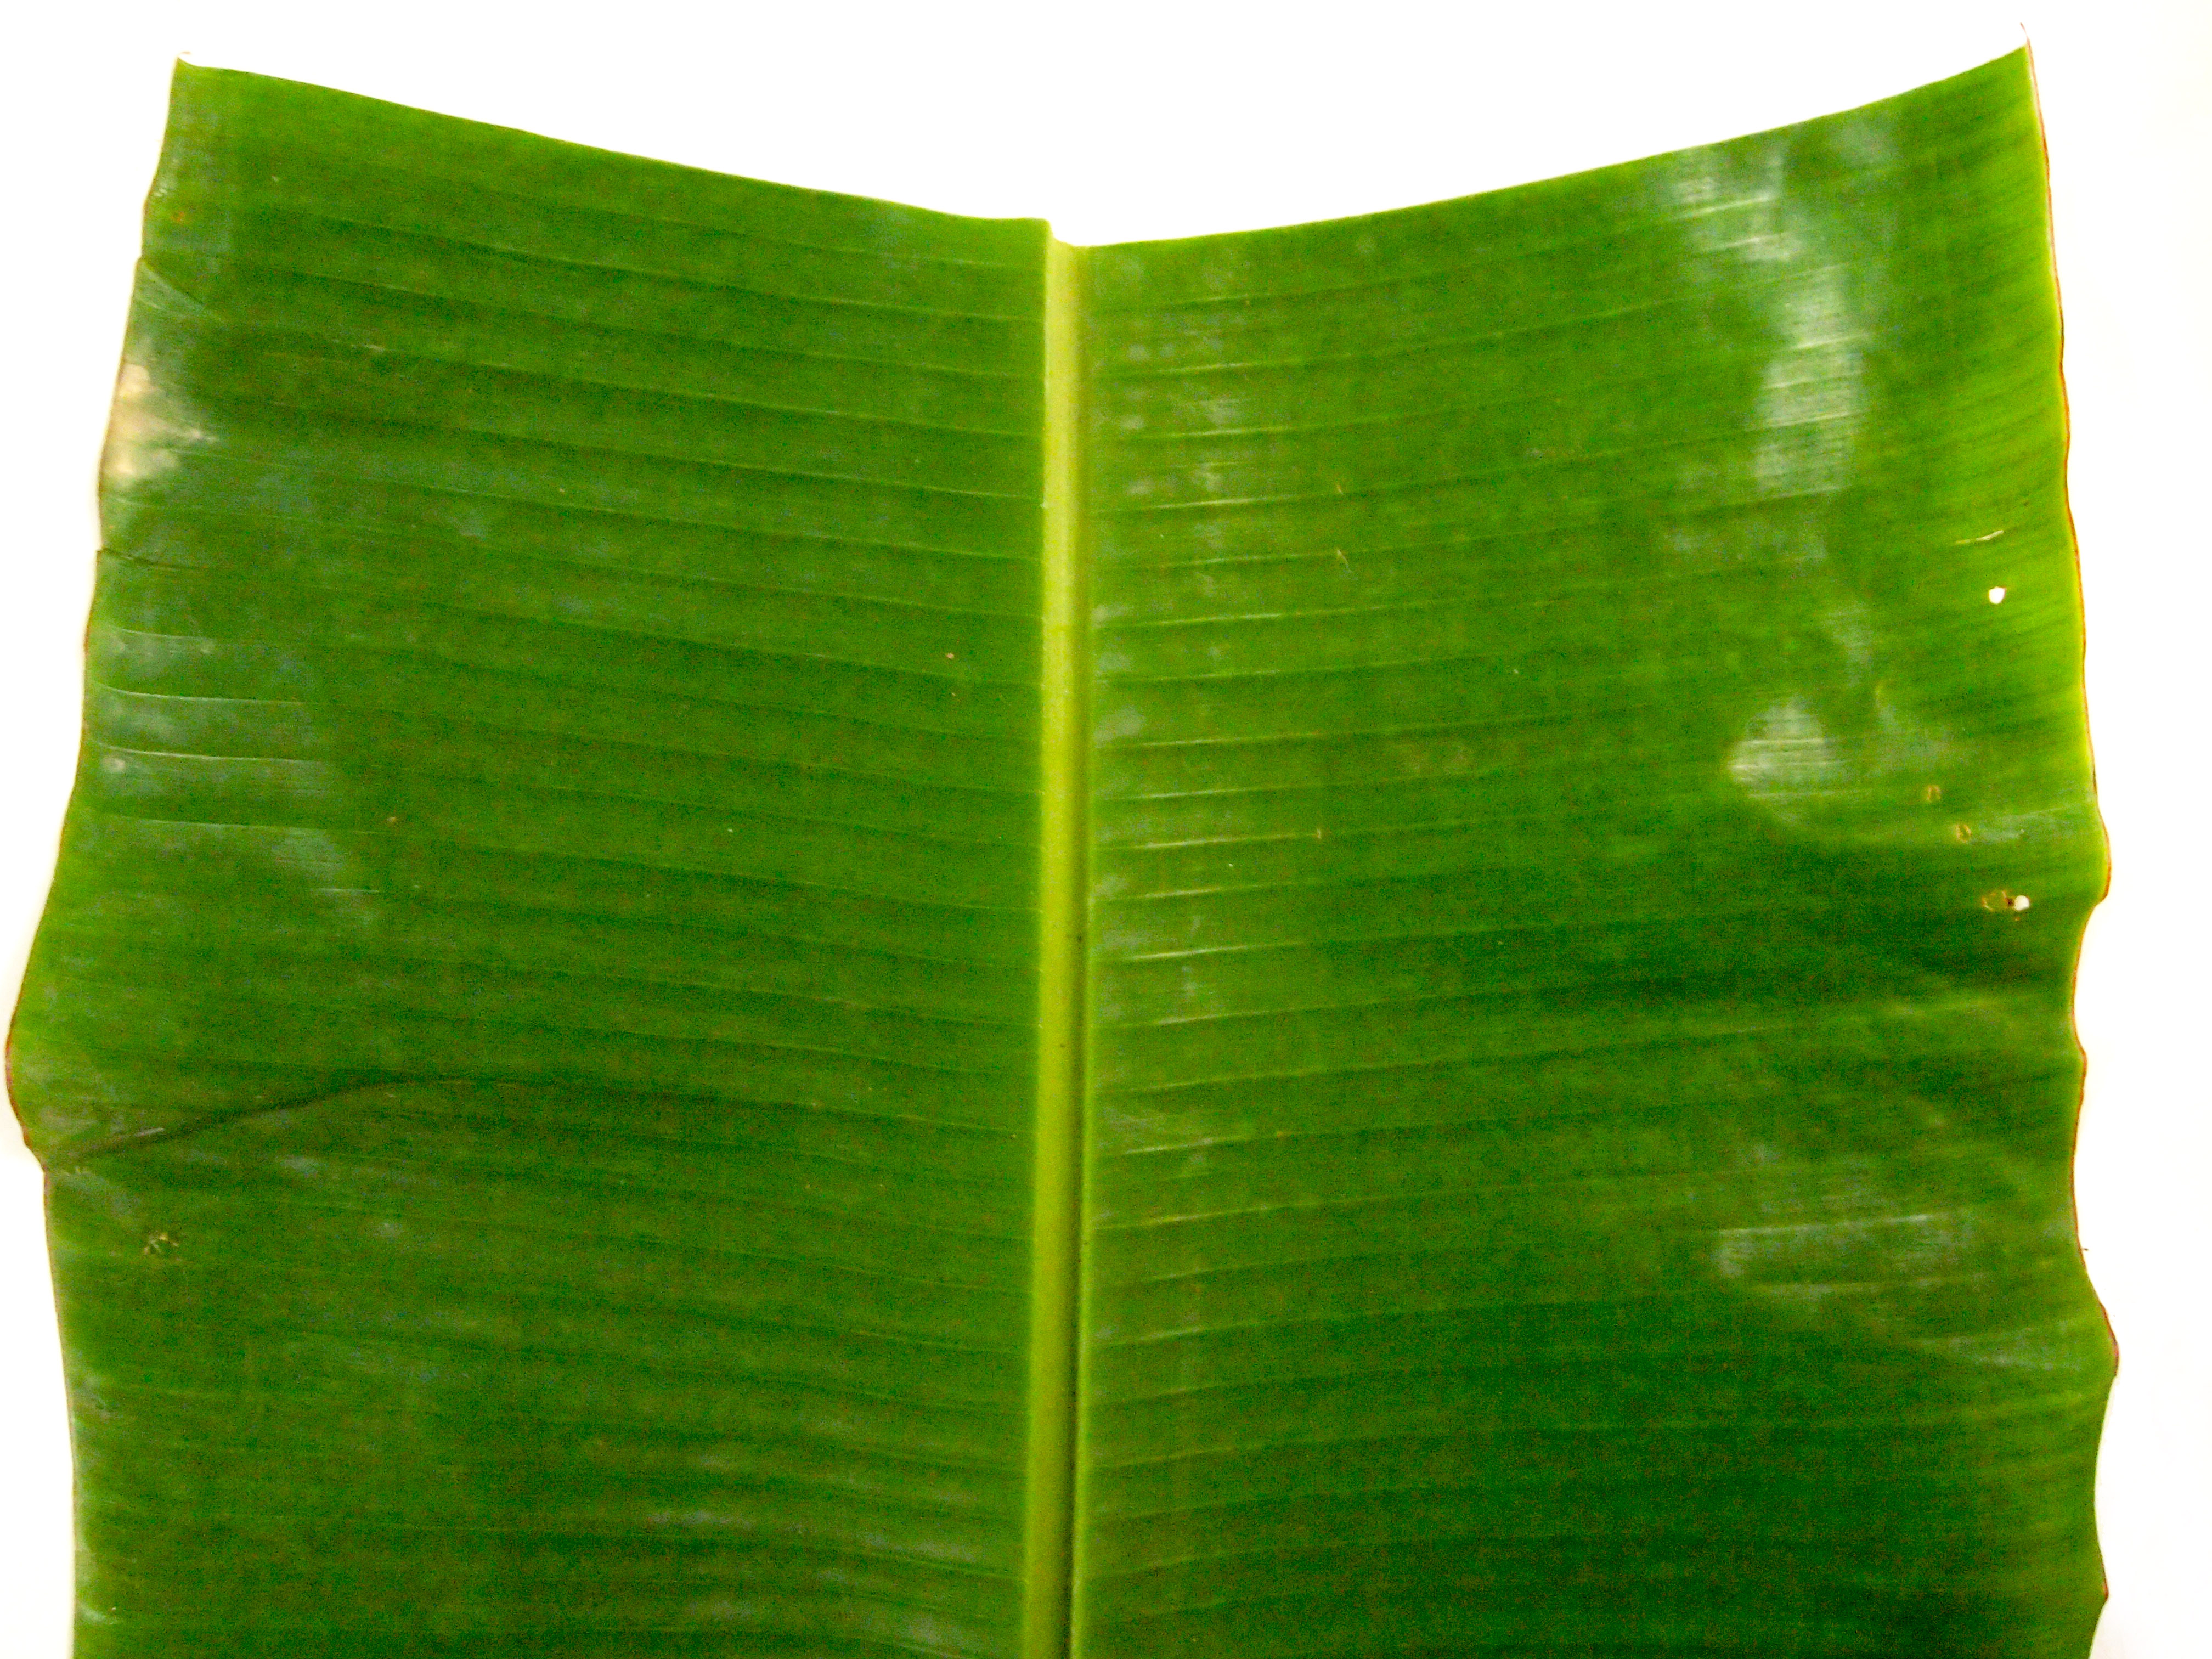 essay on banana leaves Home essays banana leaves as tea banana leaves as tea topics: antioxidant but let us consider the leaves banana leaves are fascinating and generally underappreciated isolation of caffeine from tea leaves essaycaffeine from lipton.